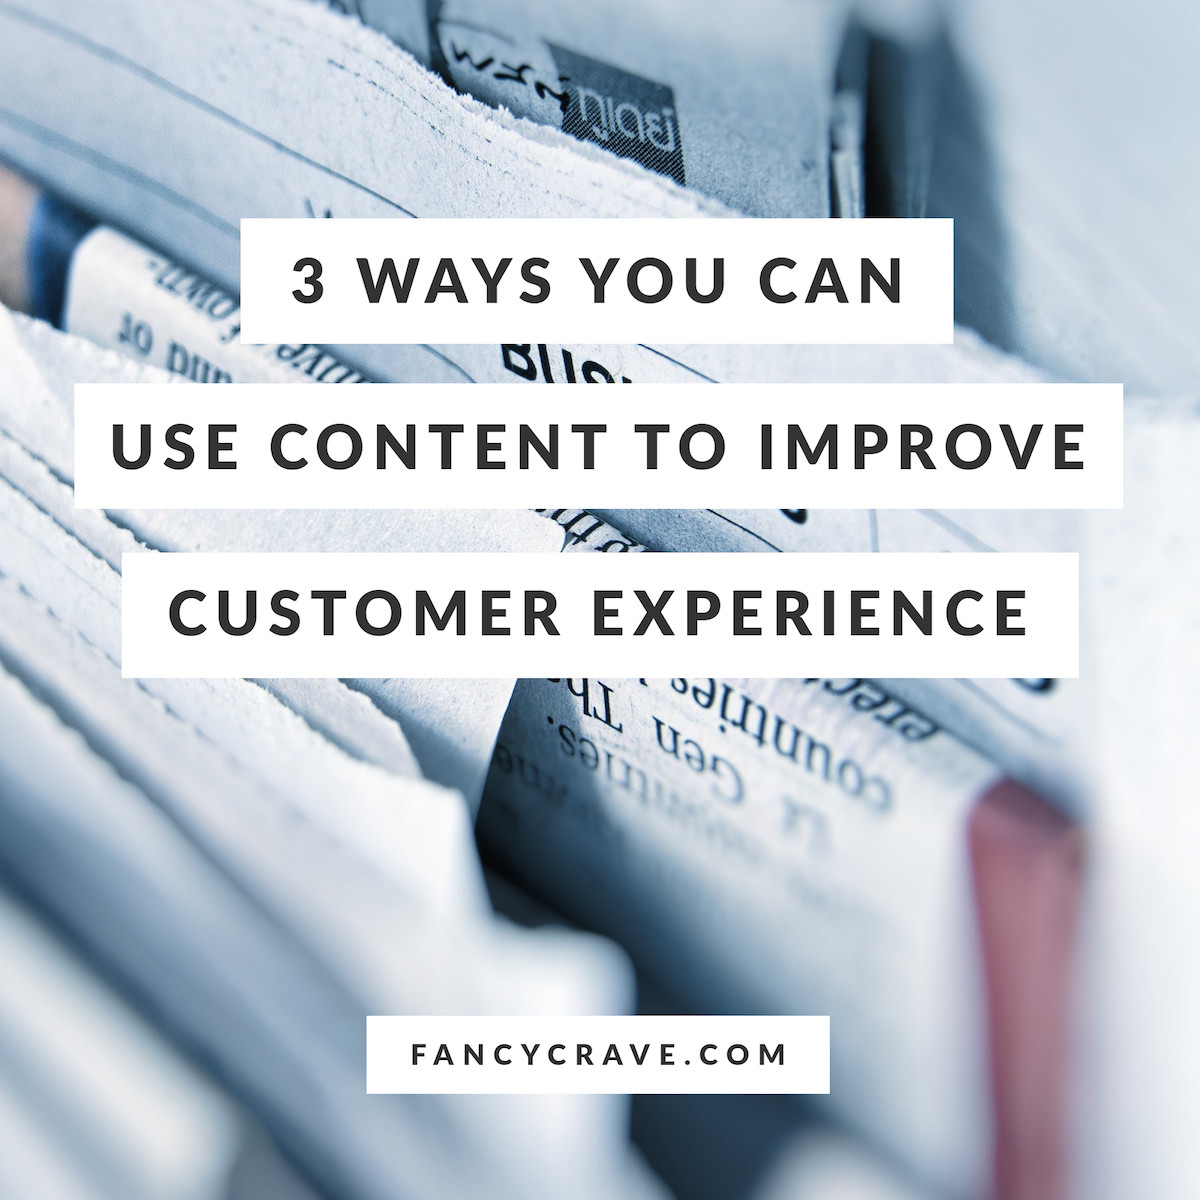 Ways You Can Use Content to Improve Customer Experience